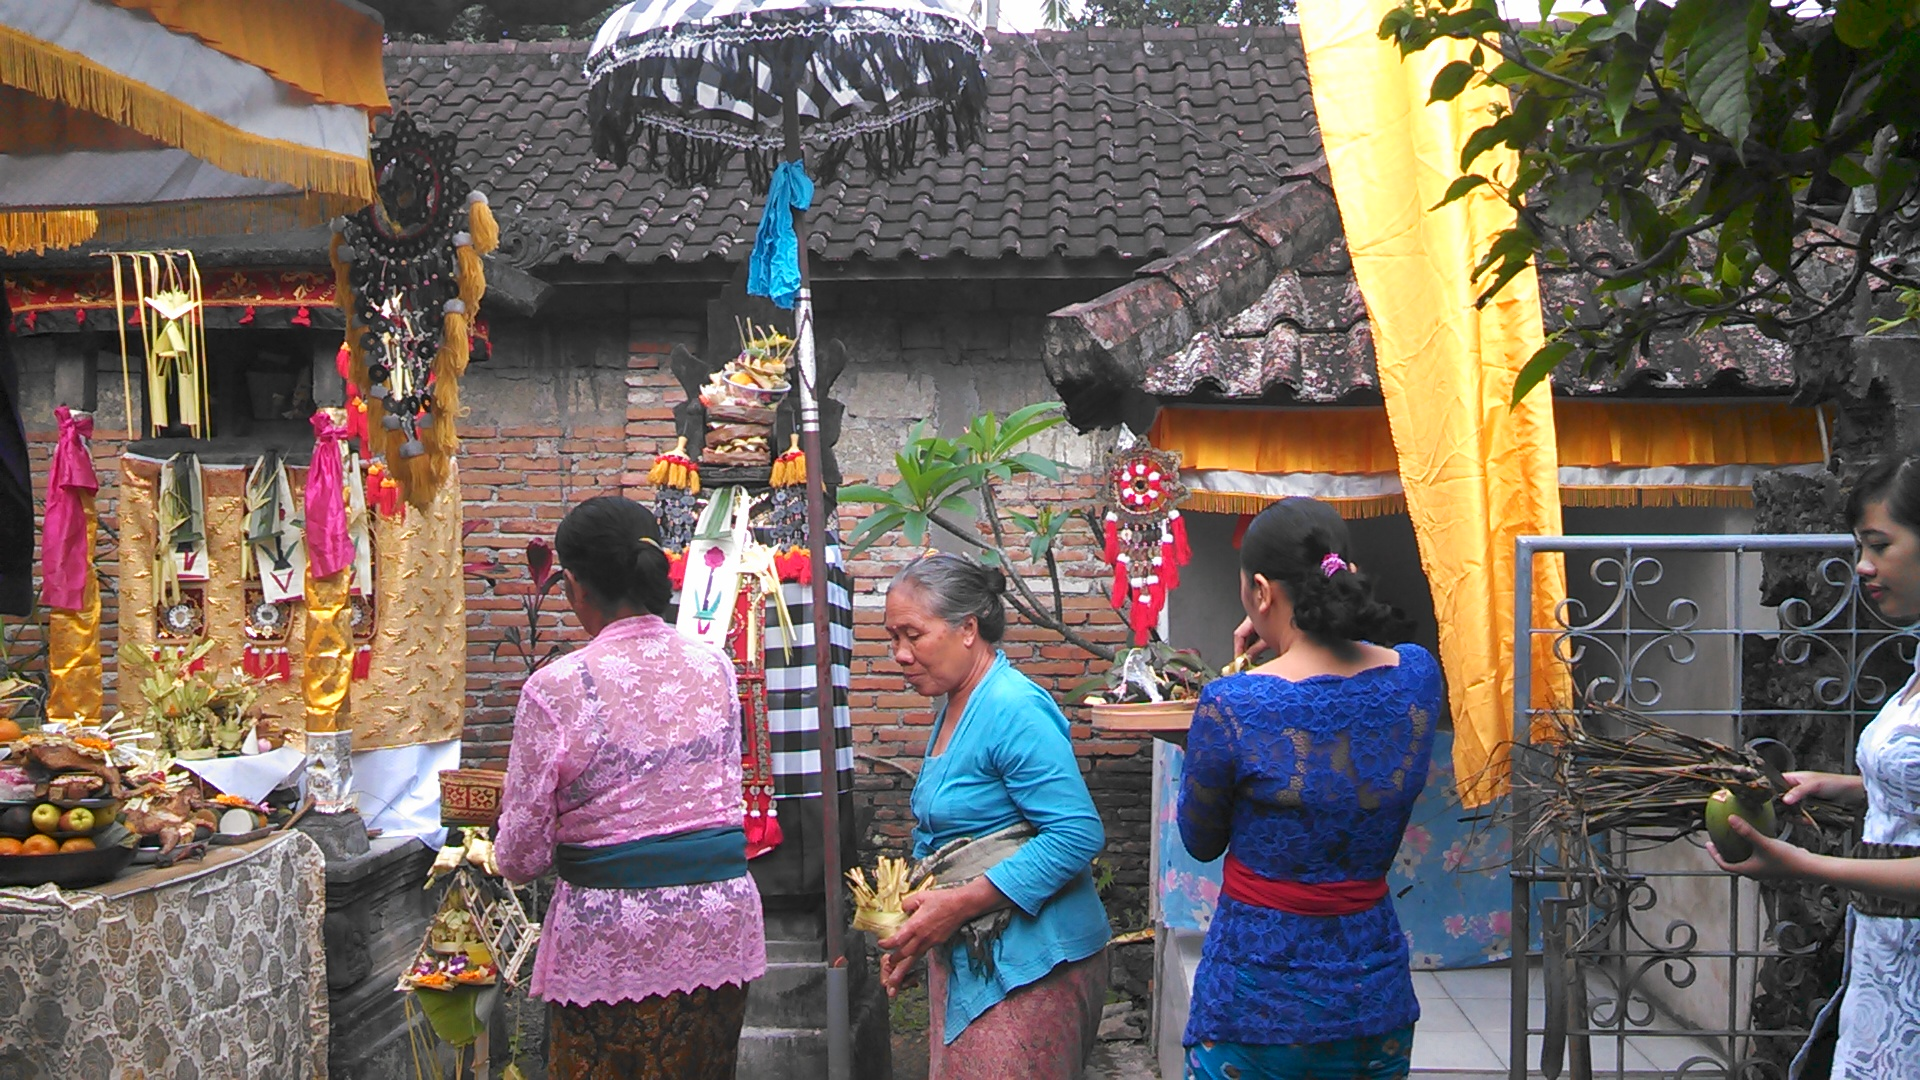 The women are still bringing in more and more offerings for the ceremony in the family temple.